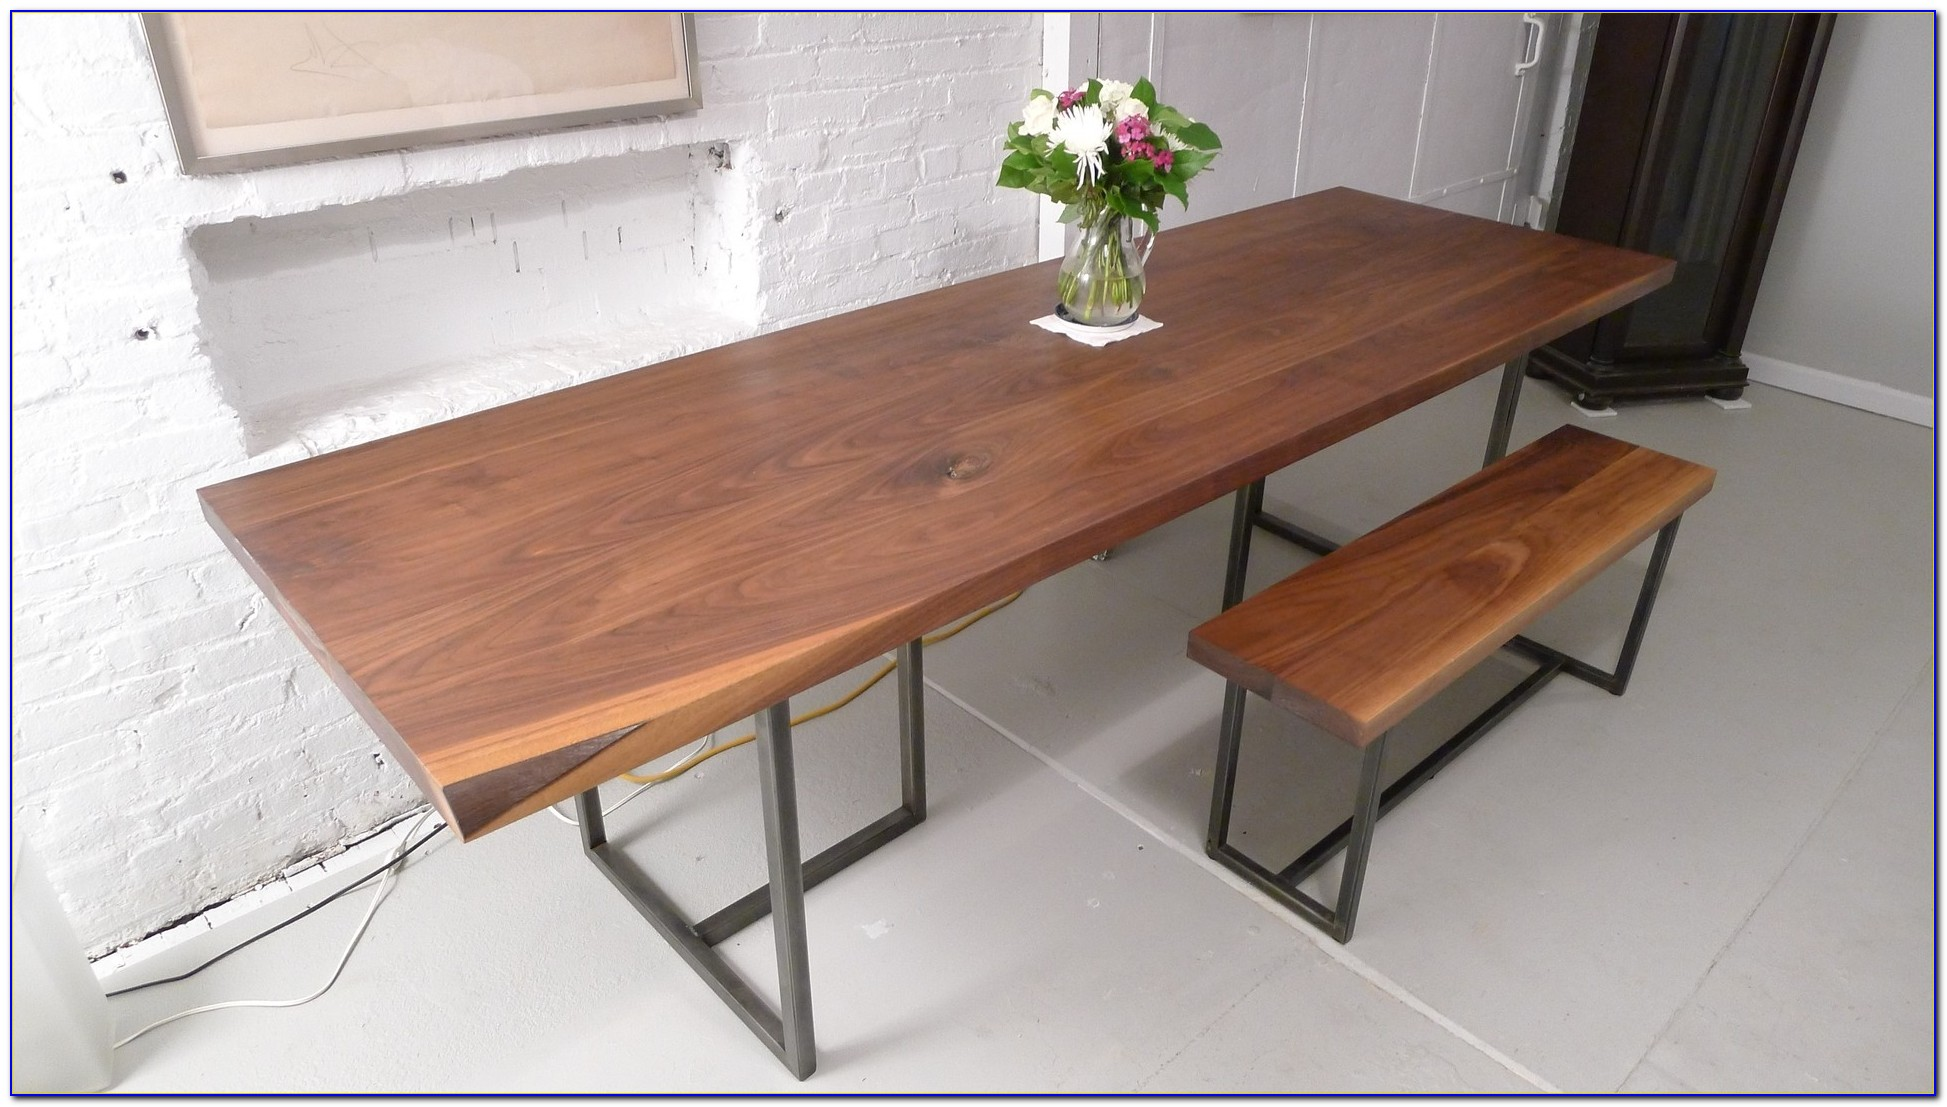 Wood Bench For Dining Room Table